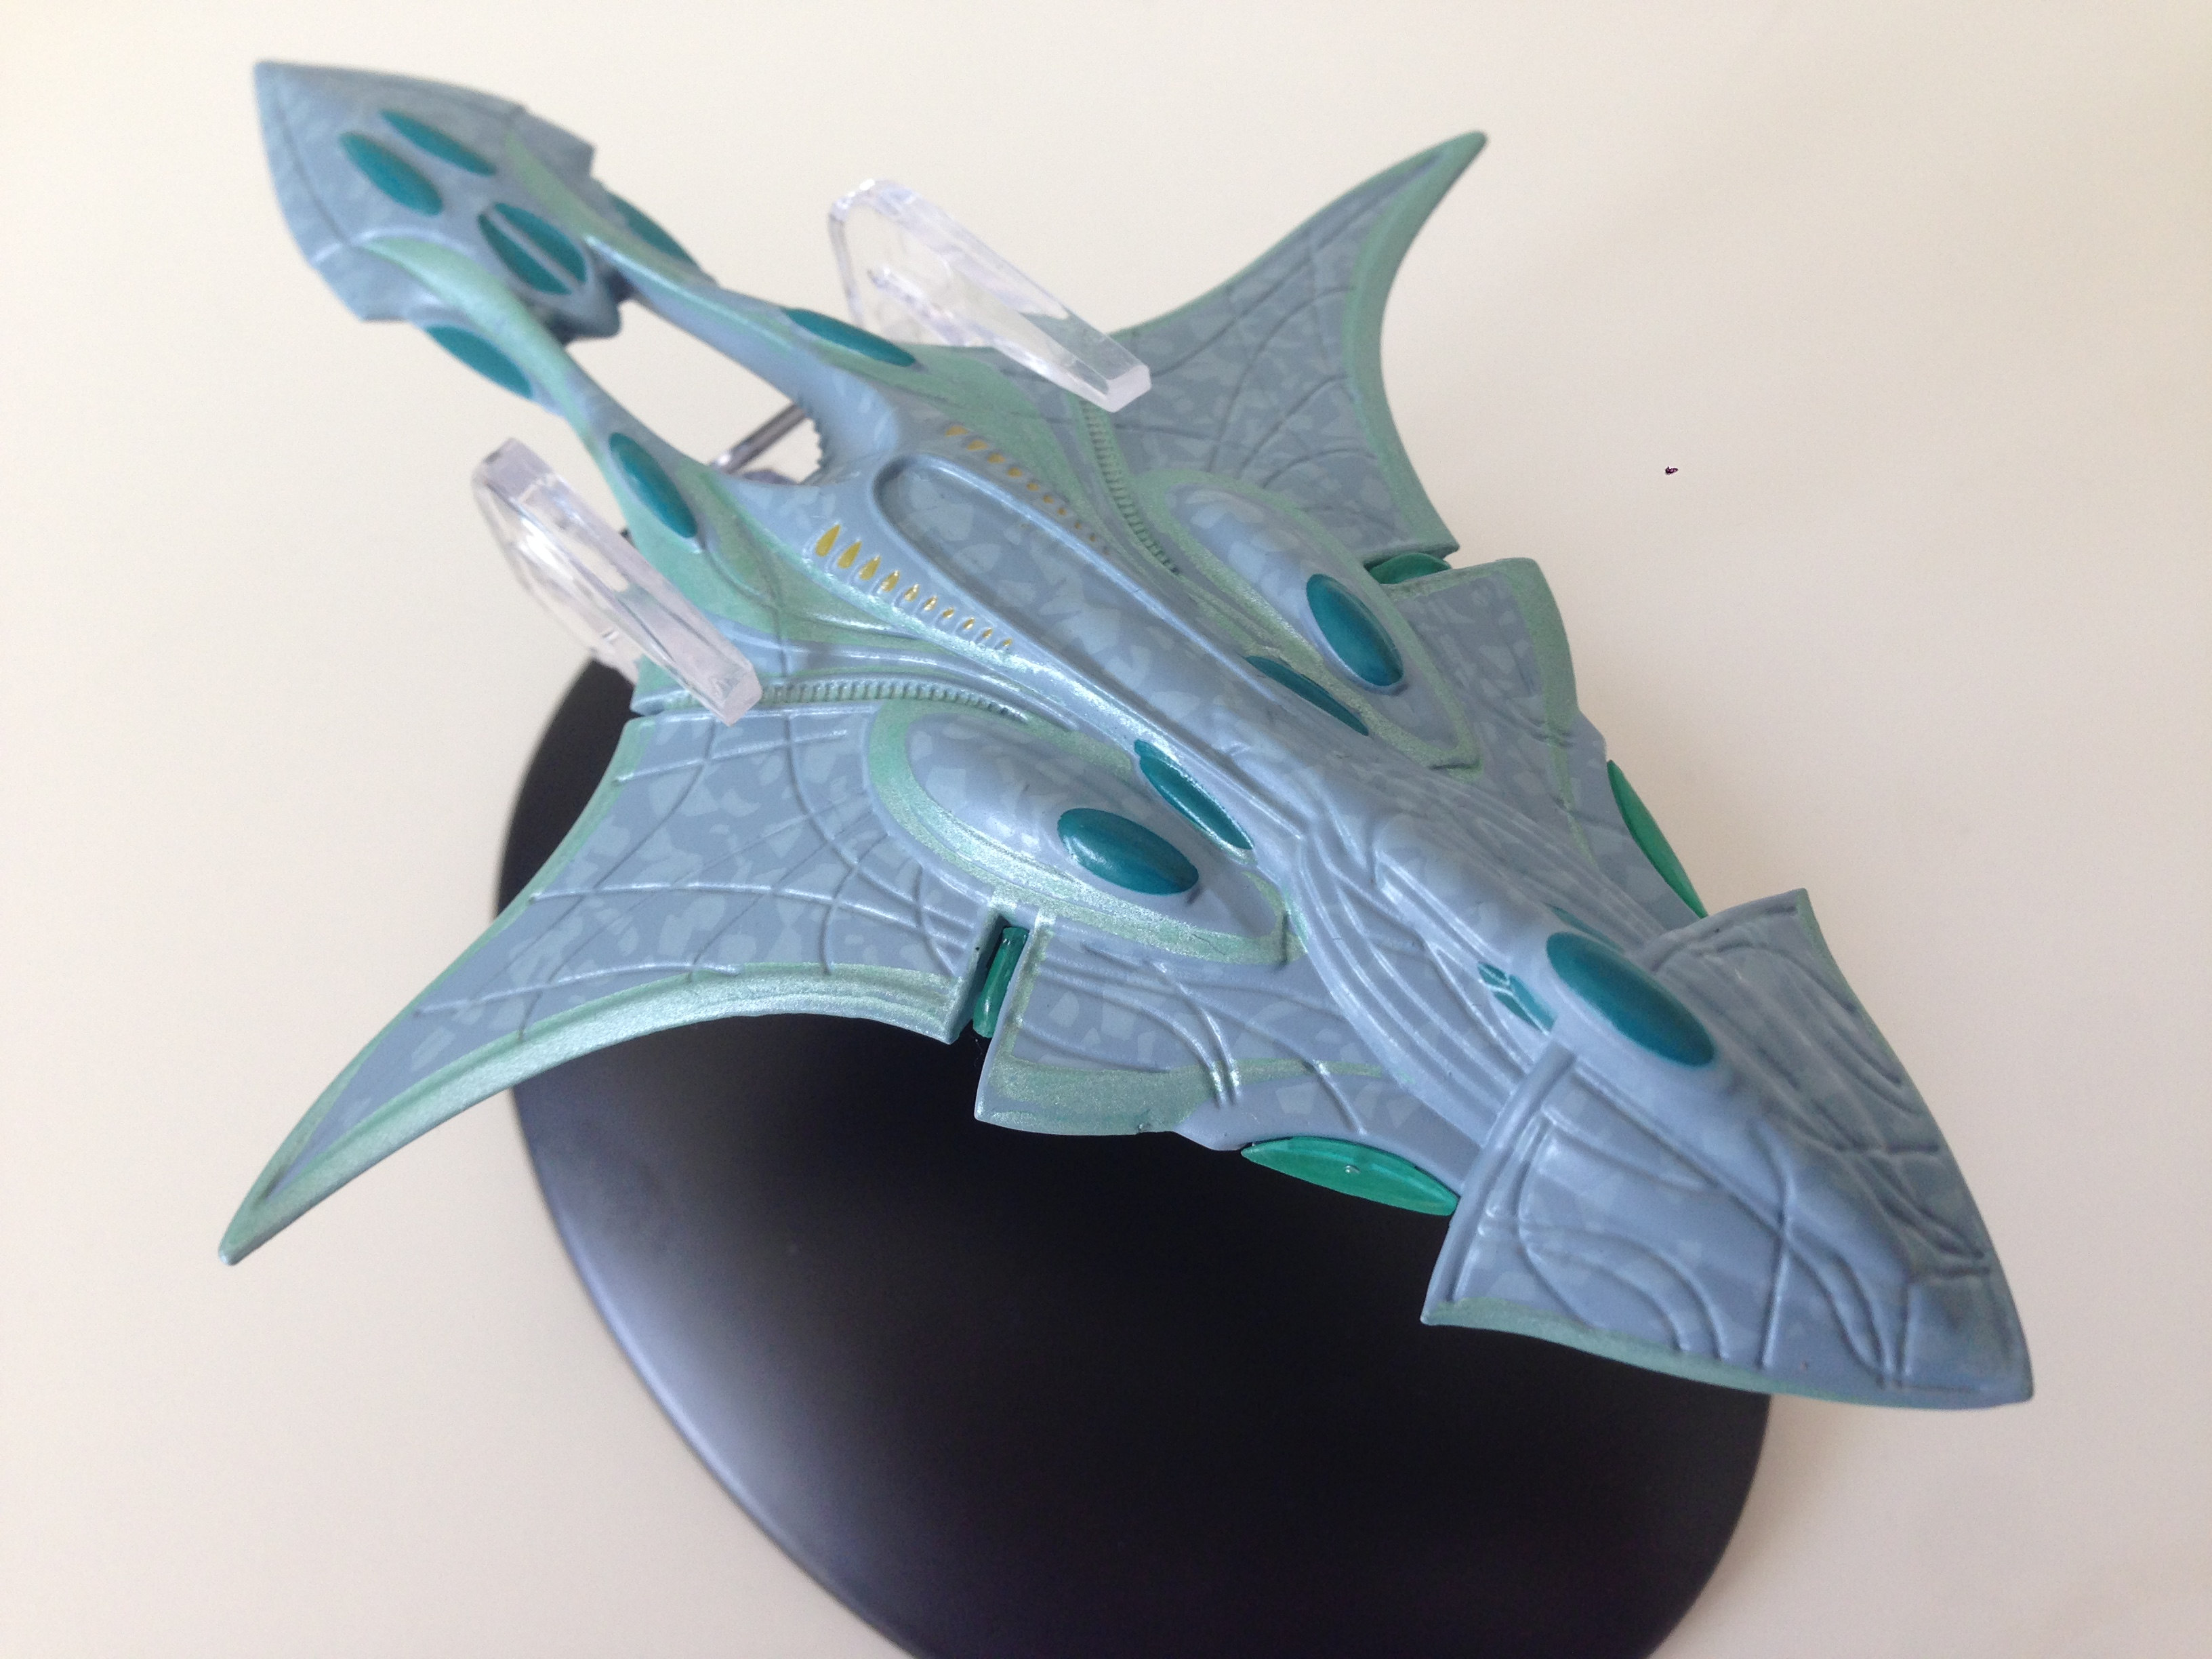 Schiff der Xindi-Aquarianer aus Star Trek: Enterprise (Foto: Star Trek HD)